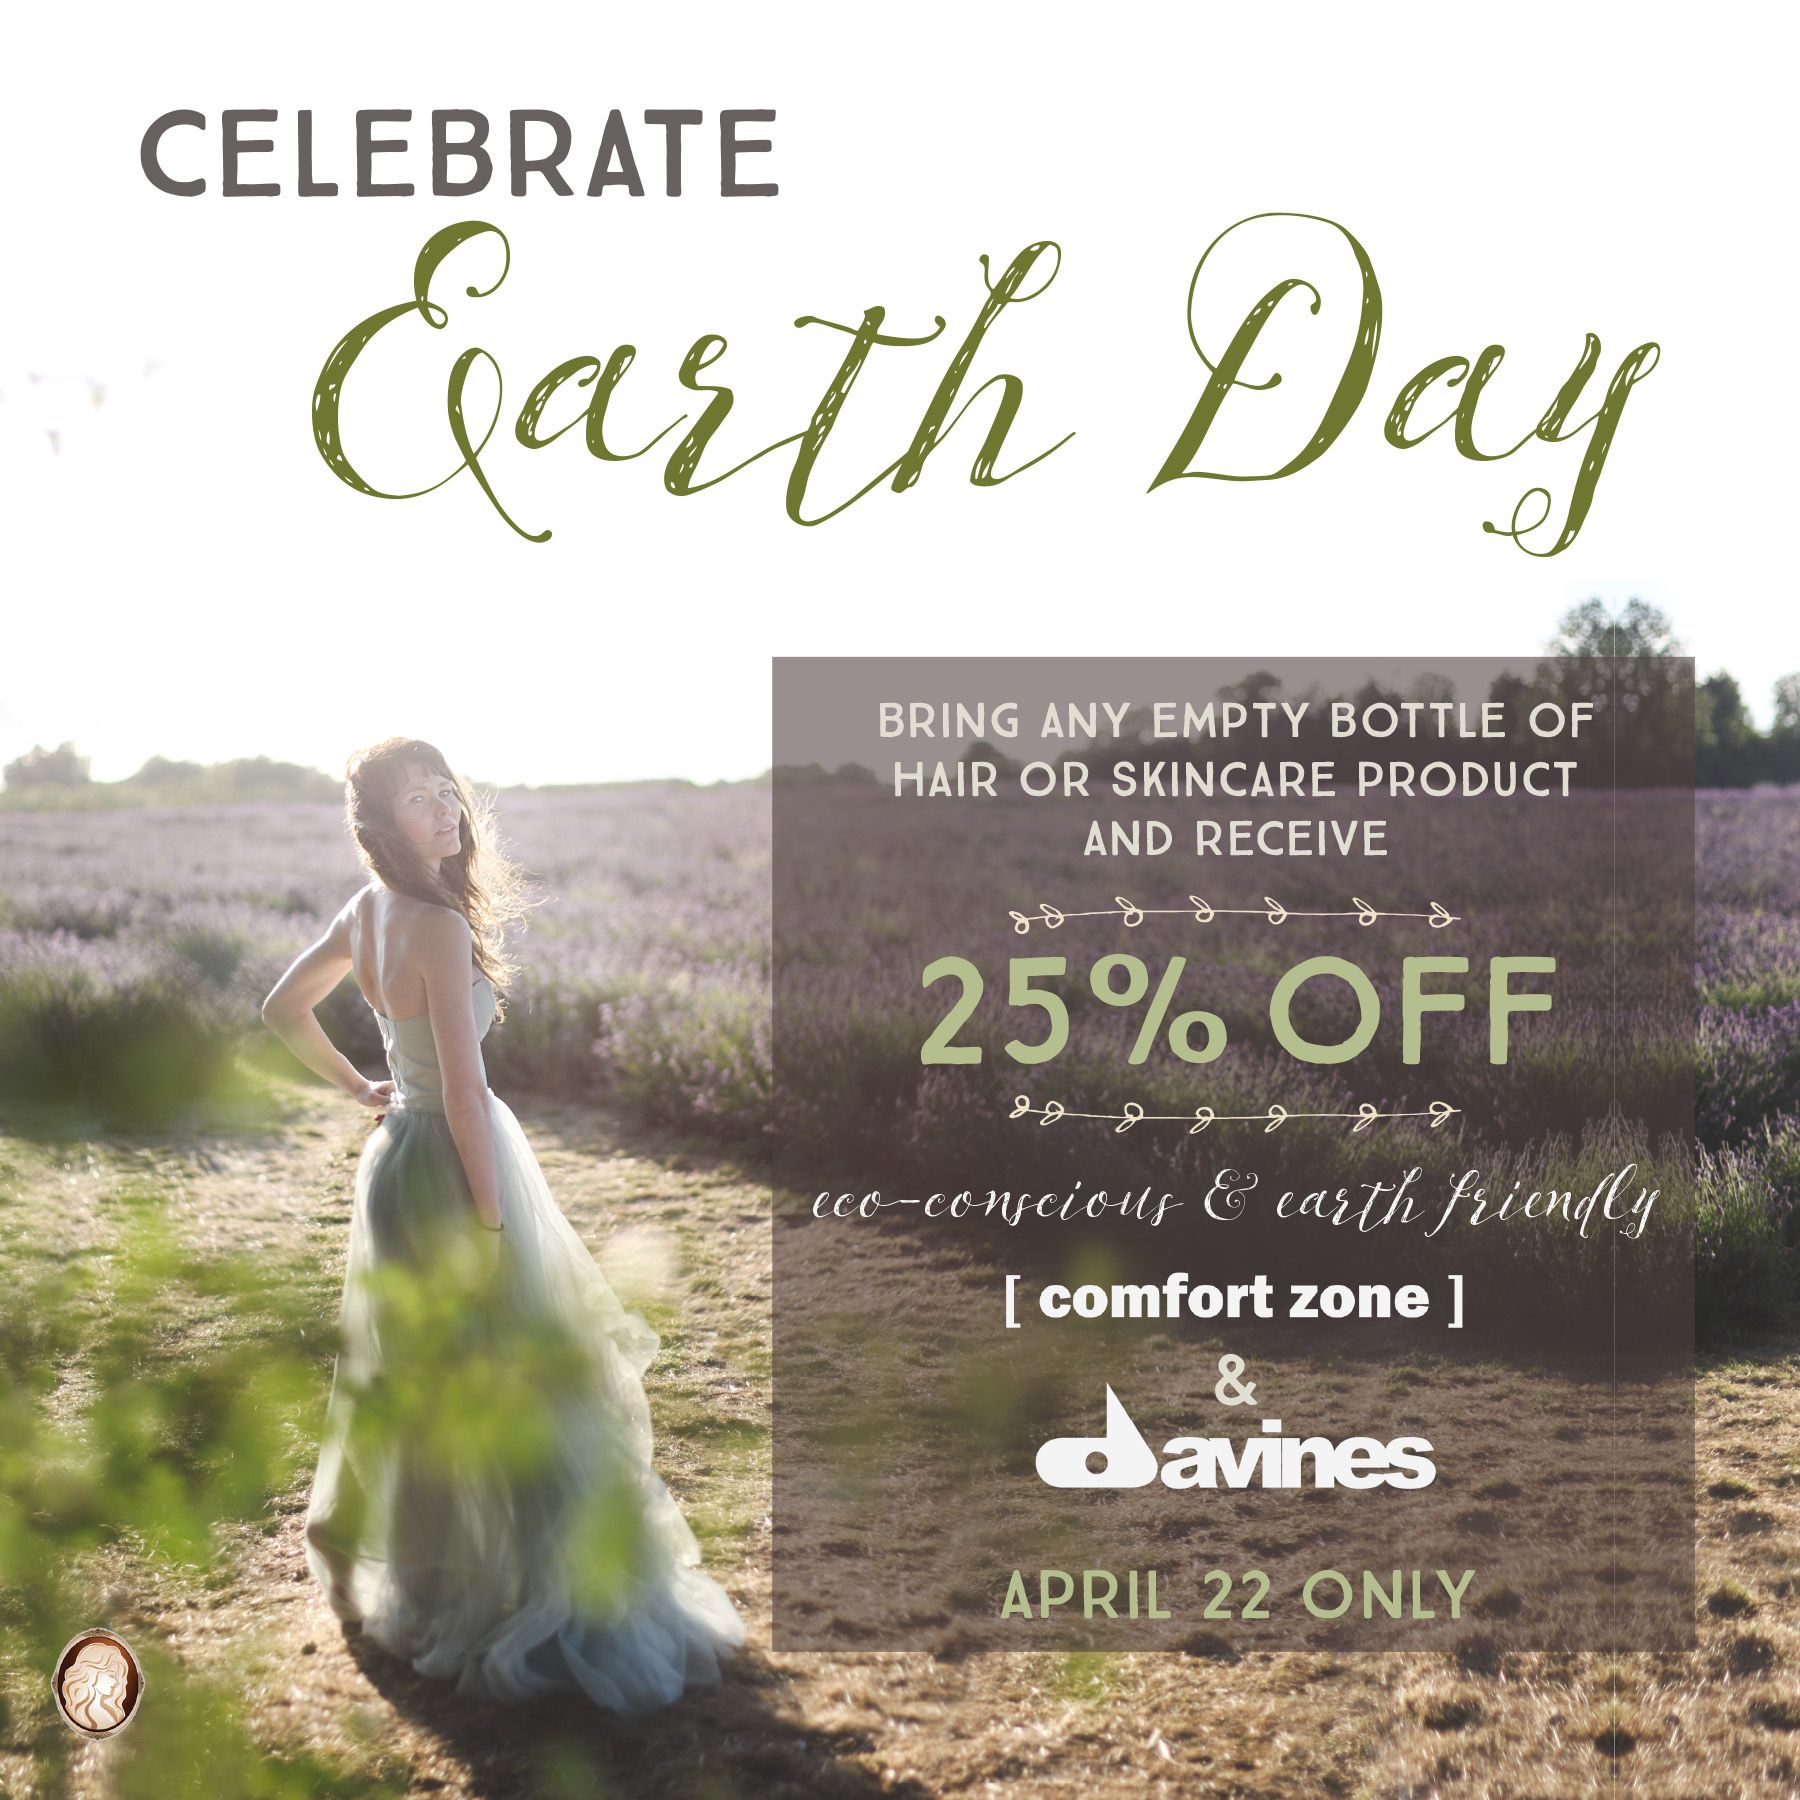 Celebrate Earth Day at Cameo College Bring ANY empty bottle of skin